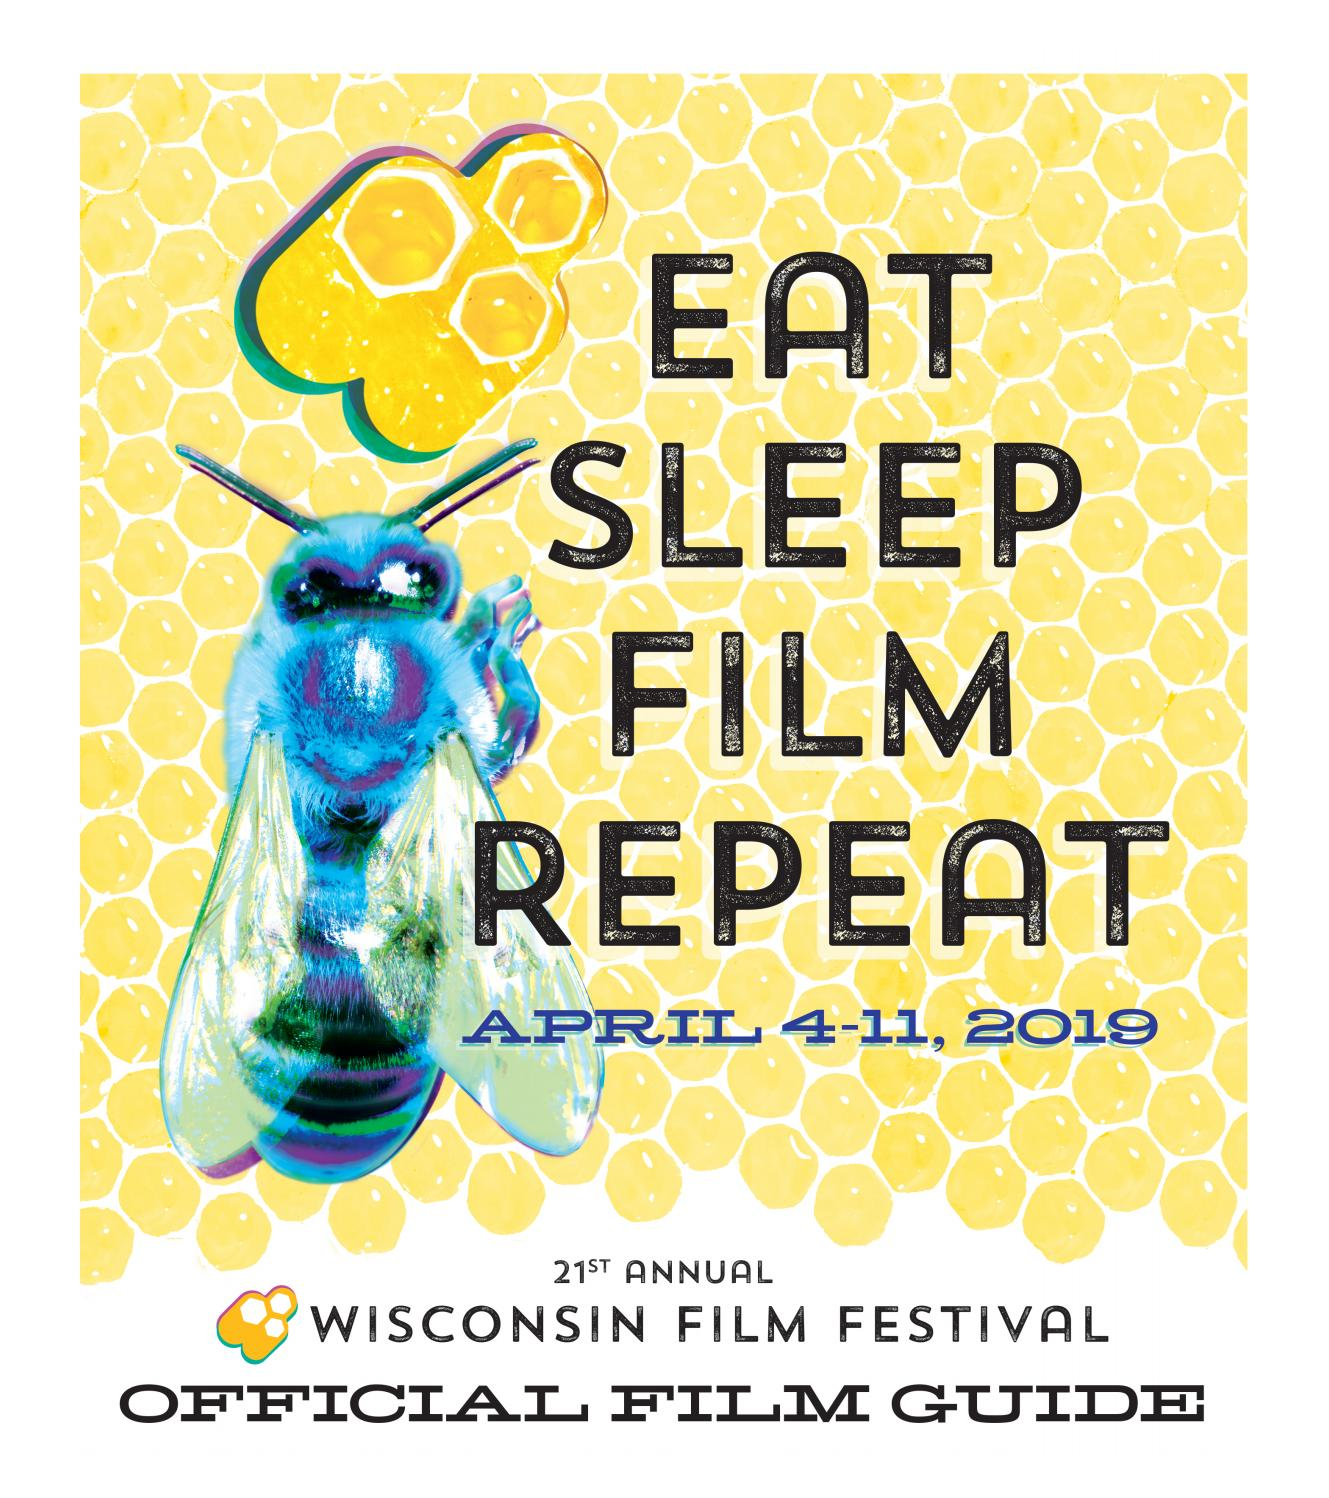 ca099af3d4a1 2019 Wisconsin Film Festival Film Guide by UW-Madison Division of the Arts  - issuu